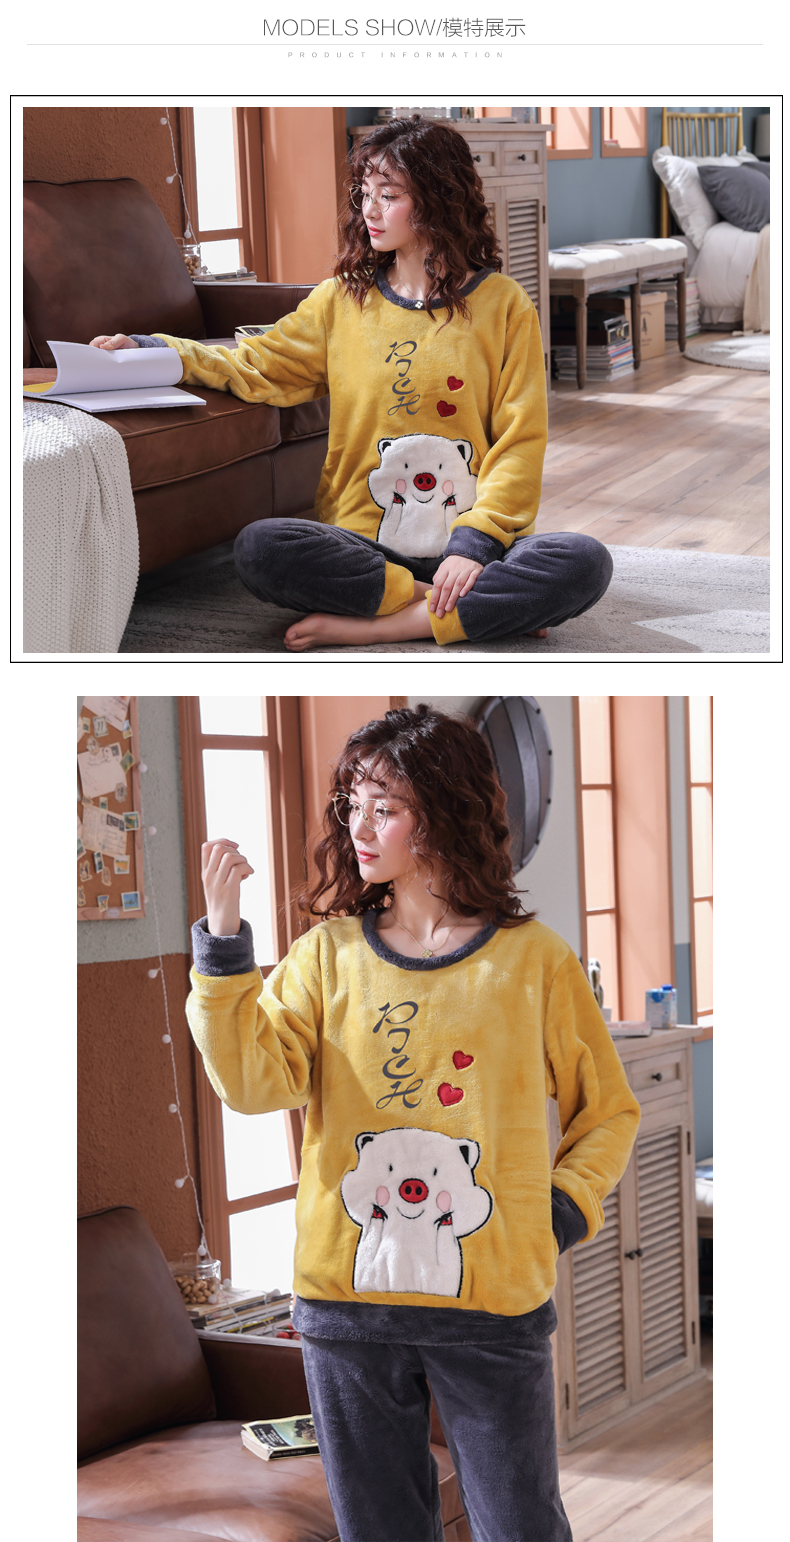 Long Sleeve Warm Flannel Pajamas Winter Women Pajama Sets Print Thicken Sleepwear Pyjamas Plus Size 3XL 4XL 5XL 85kg Nightwear 399